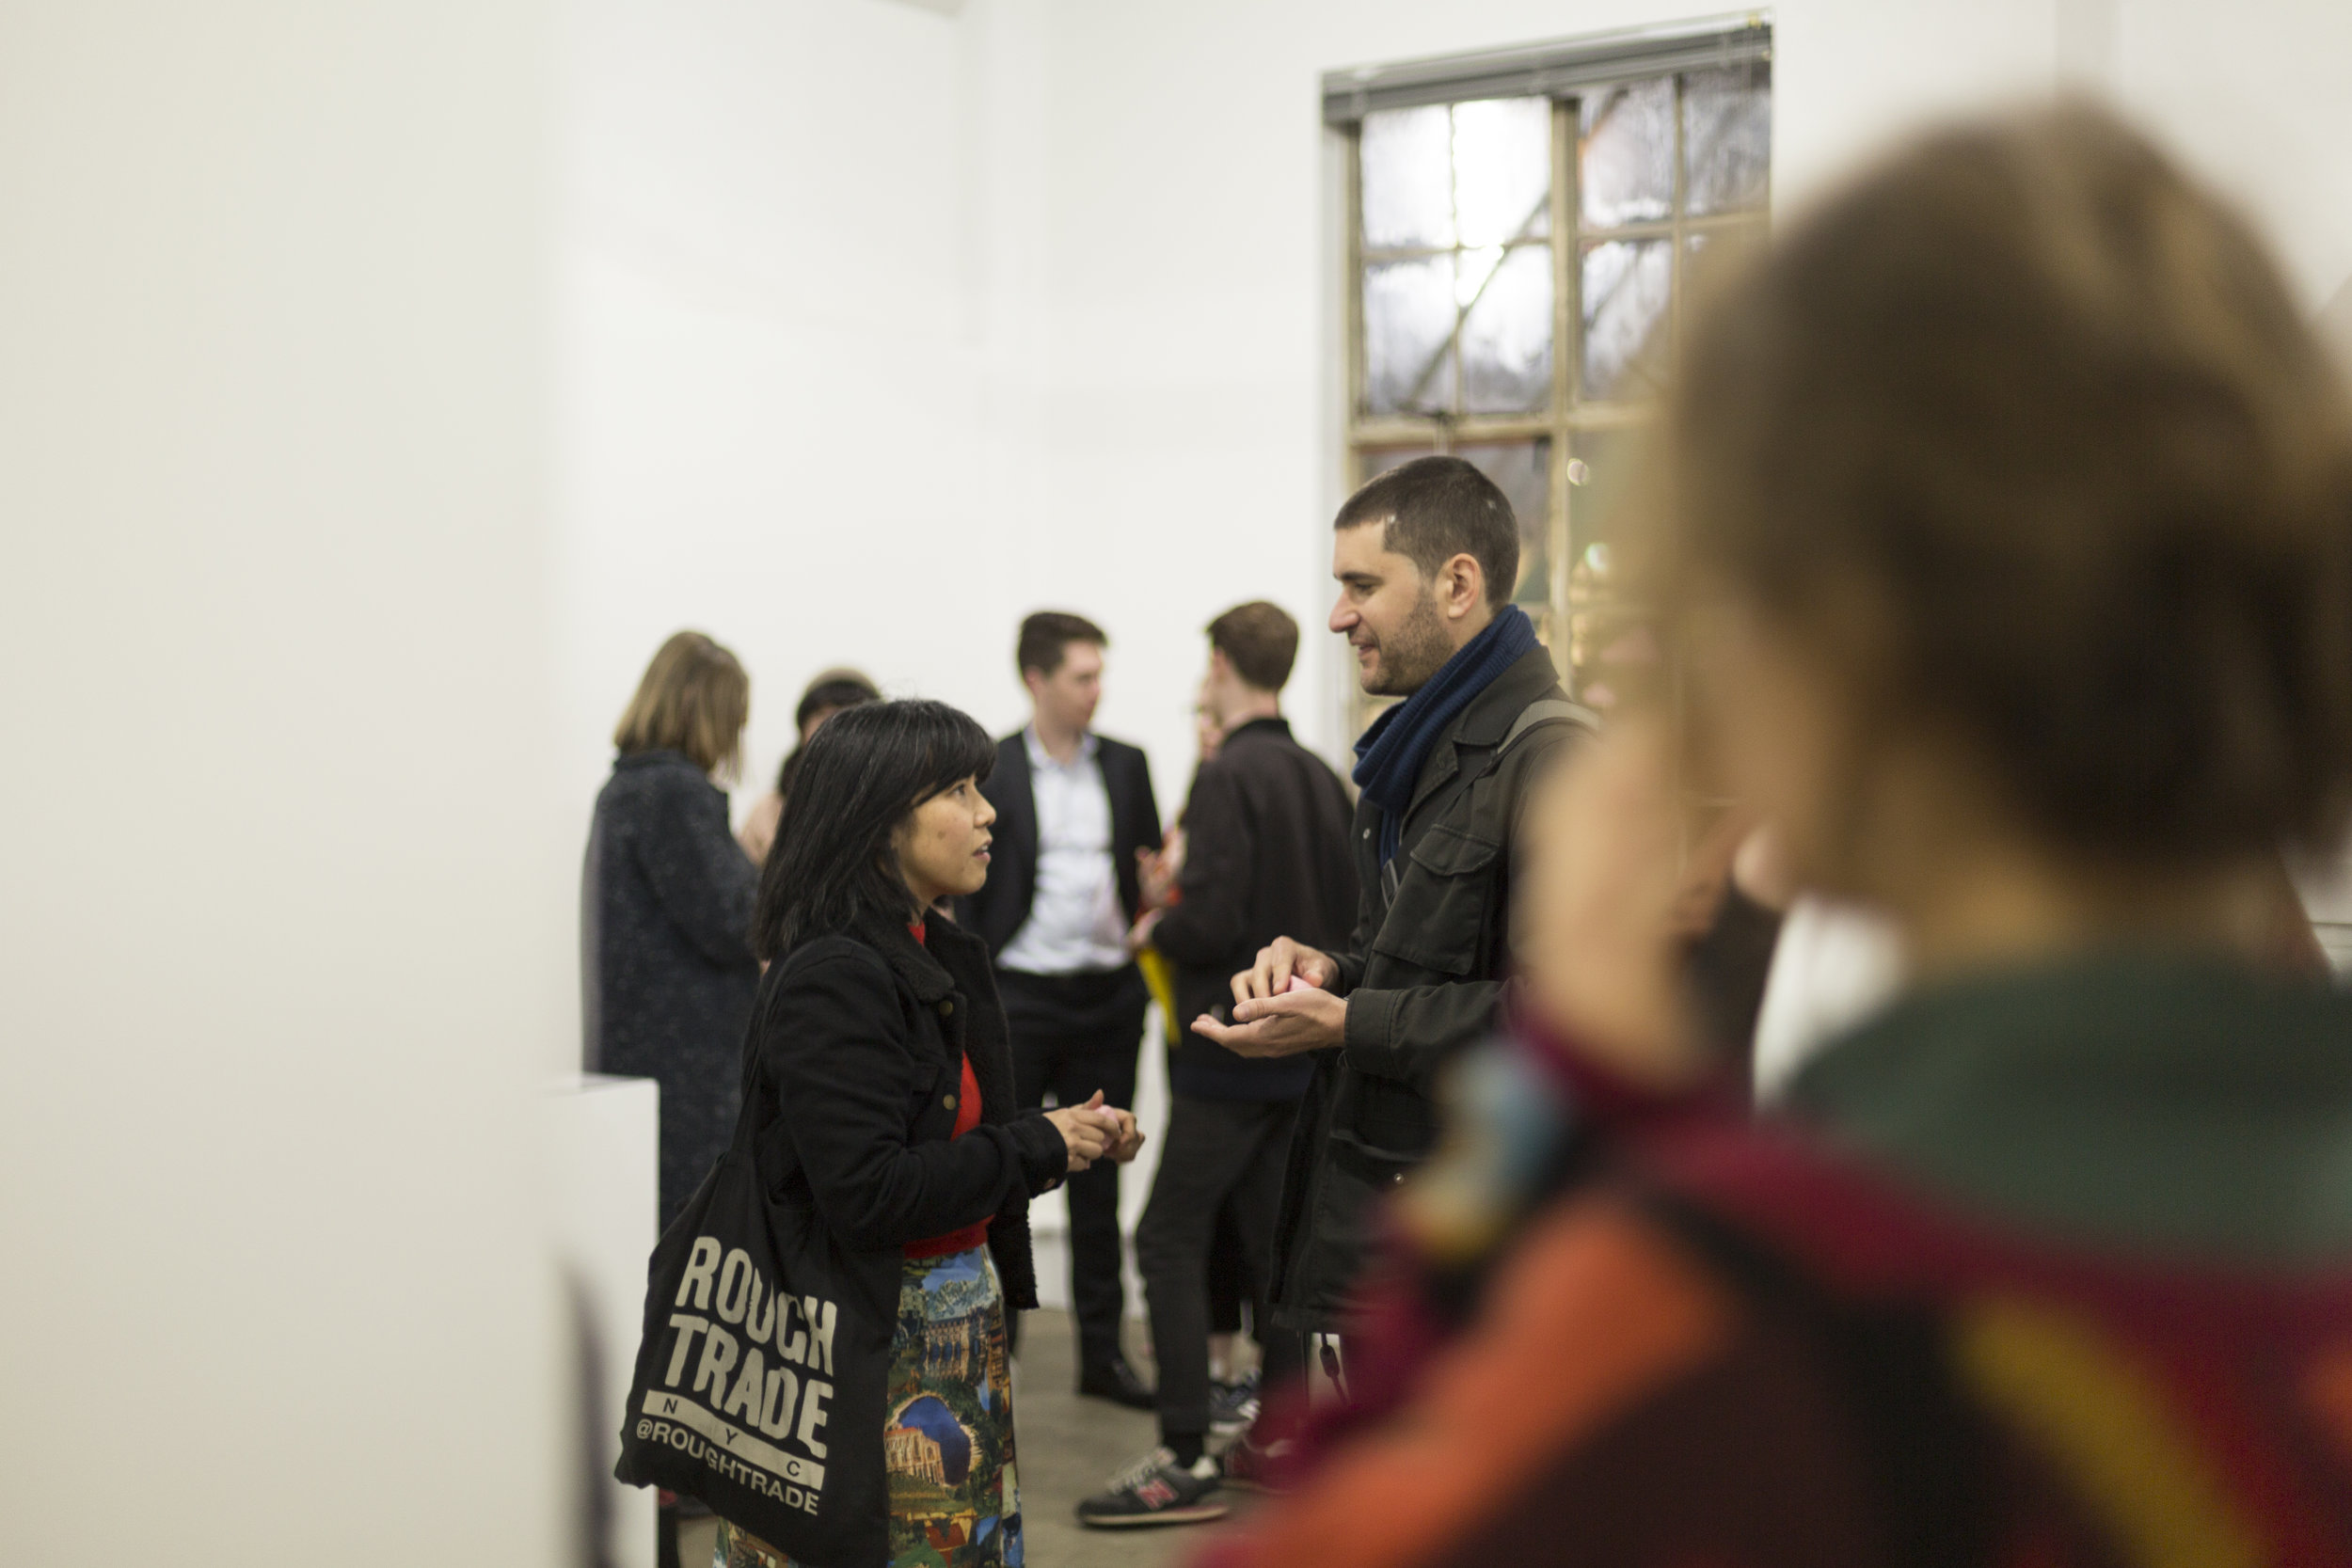 a temple, a commons, and a cave Exhibition Opening Night, MEANWHILE Gallery, 12 September 2018. Photo by Mia Vinaccia